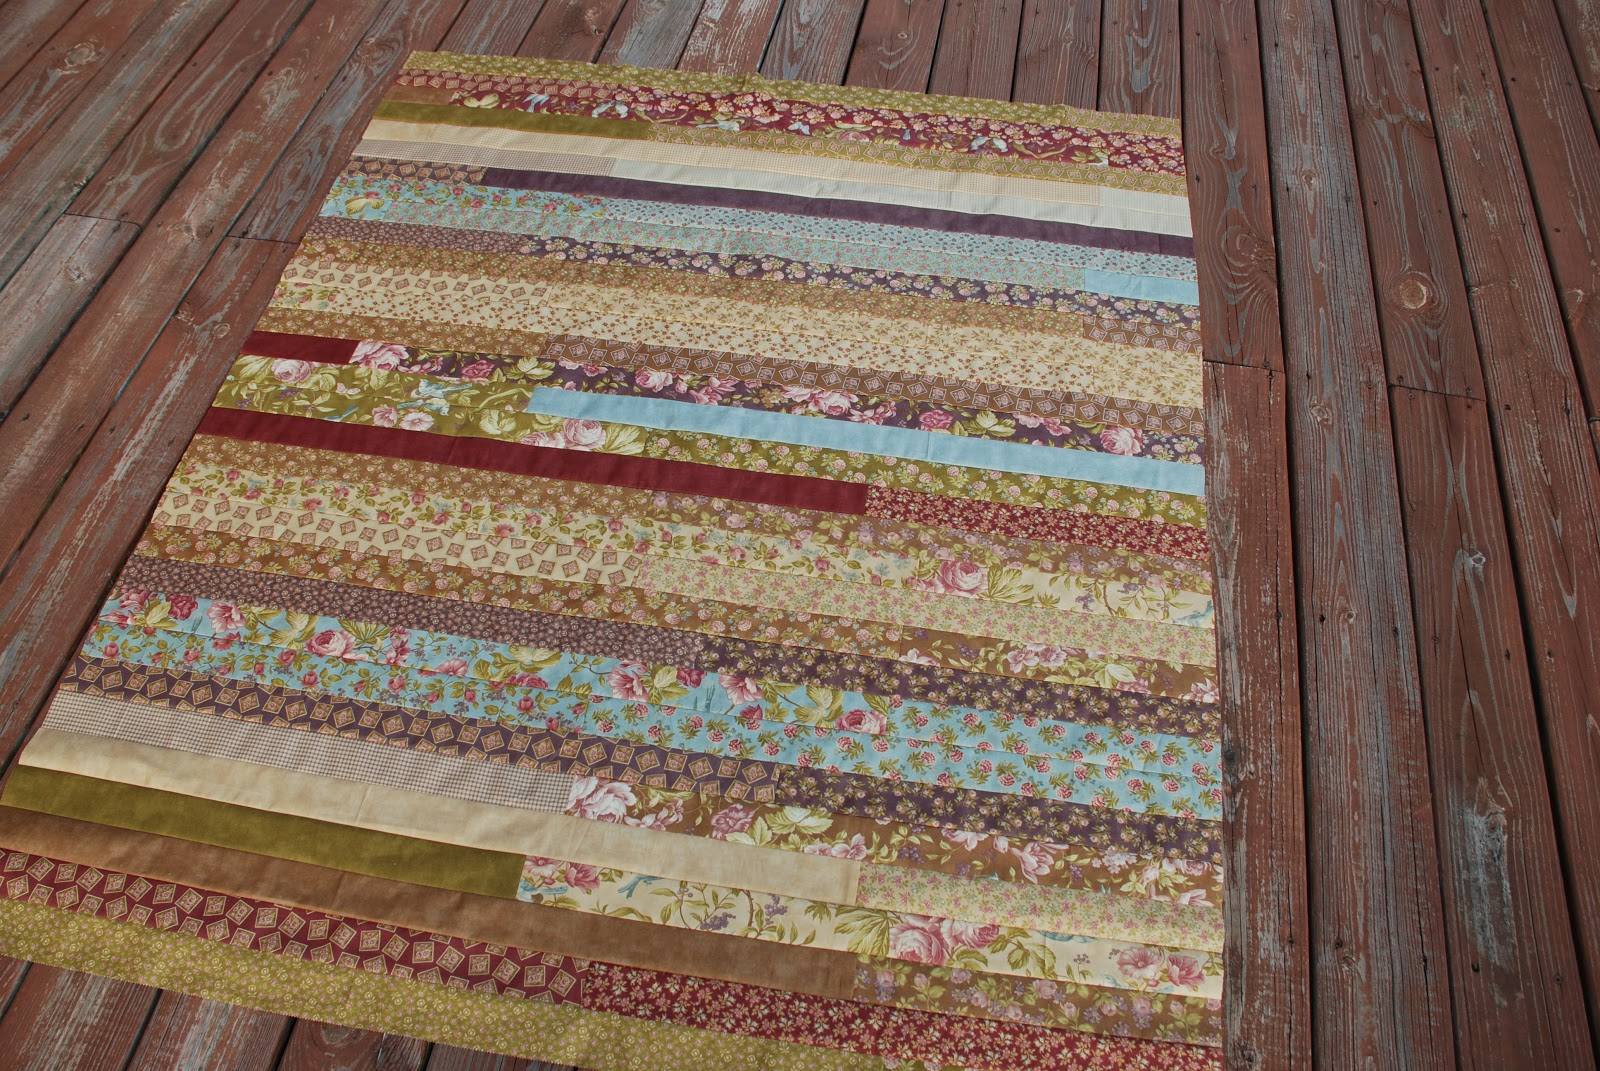 Quilt Pattern Jelly Roll Race : Spun Sugar Quilts: Jelly Roll Race Quilt Top #6